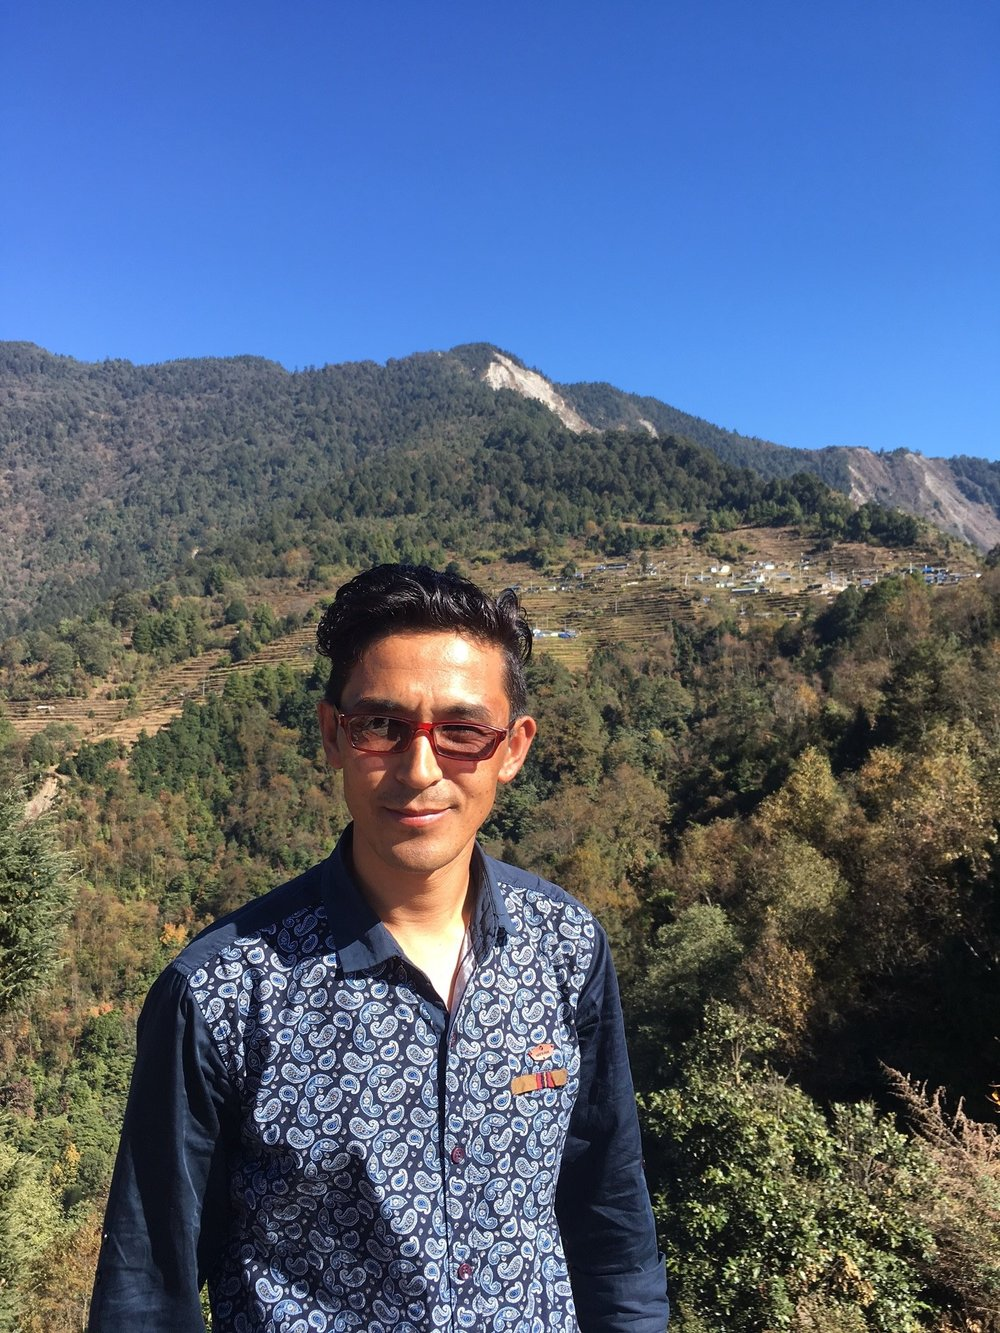 One of our Guides, Chhering, in front of his home village- Upper Gyangul.